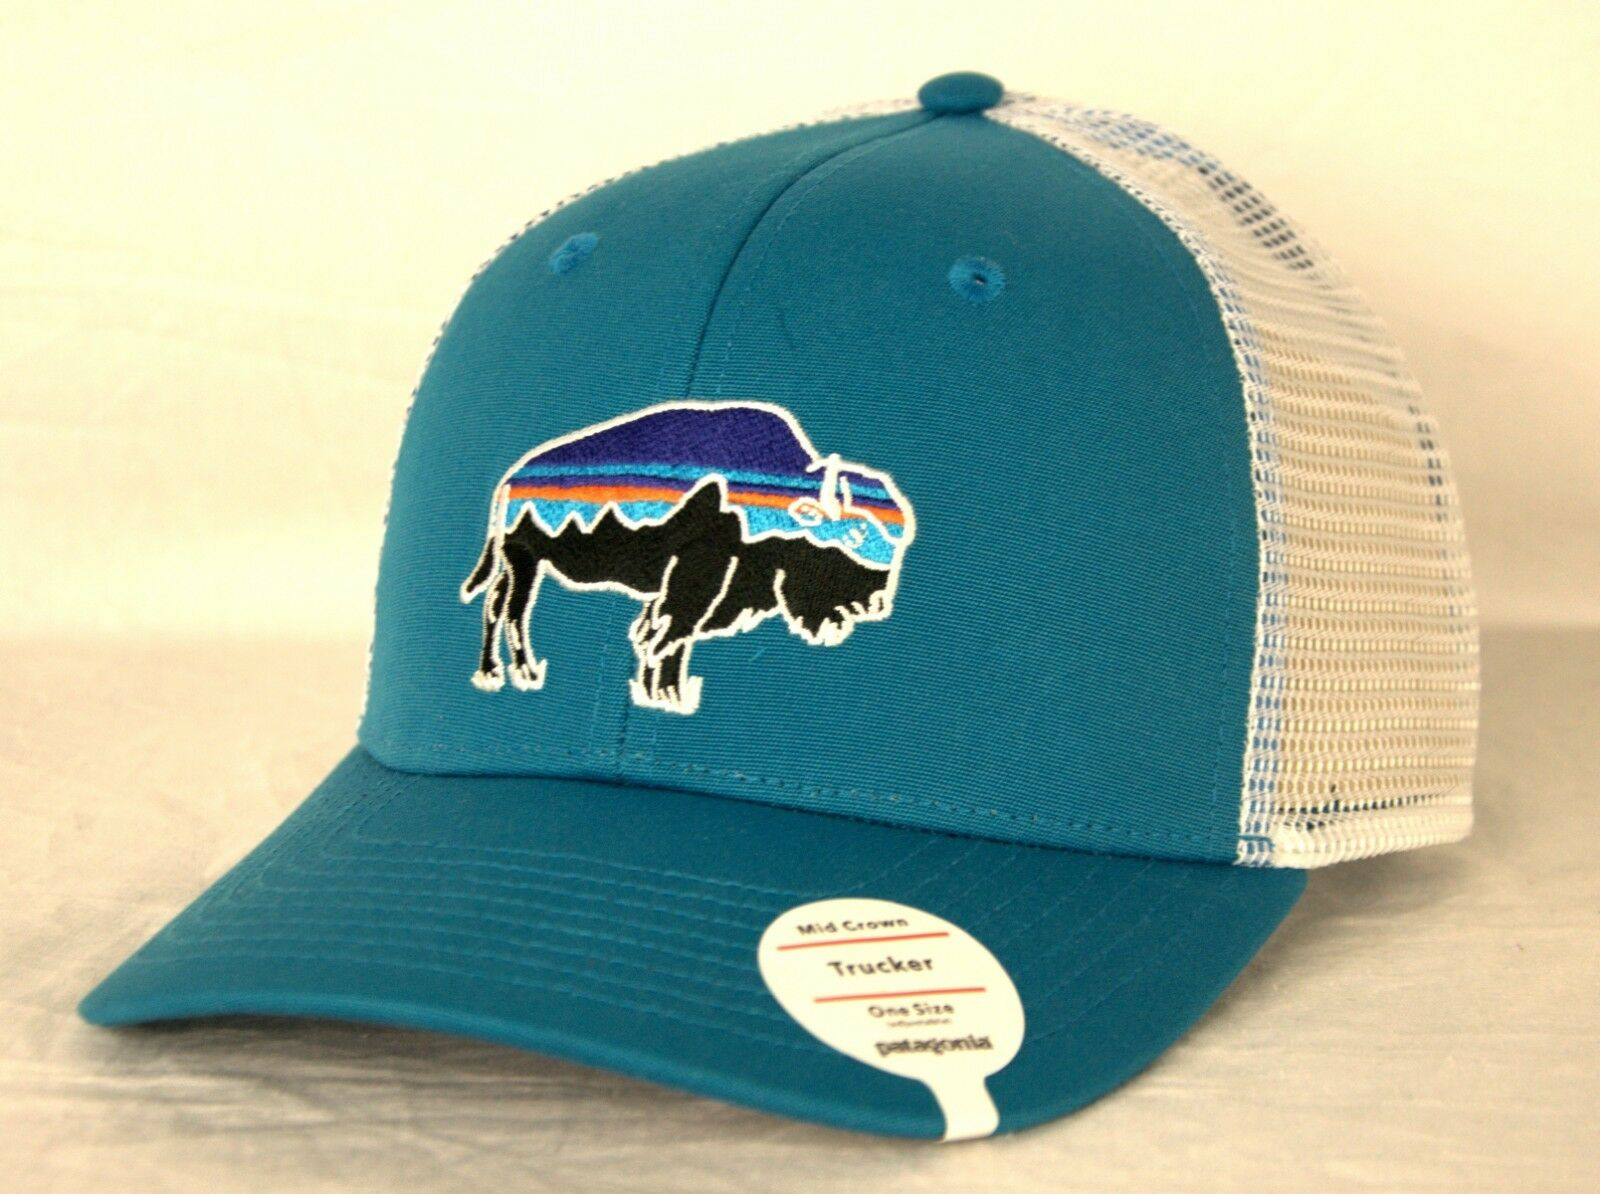 Patagonia Fitz Roy Bison Trucker Mesh Snapback Cap/Hat Size 38049 Lumi Blue One Size Cap/Hat f7236a